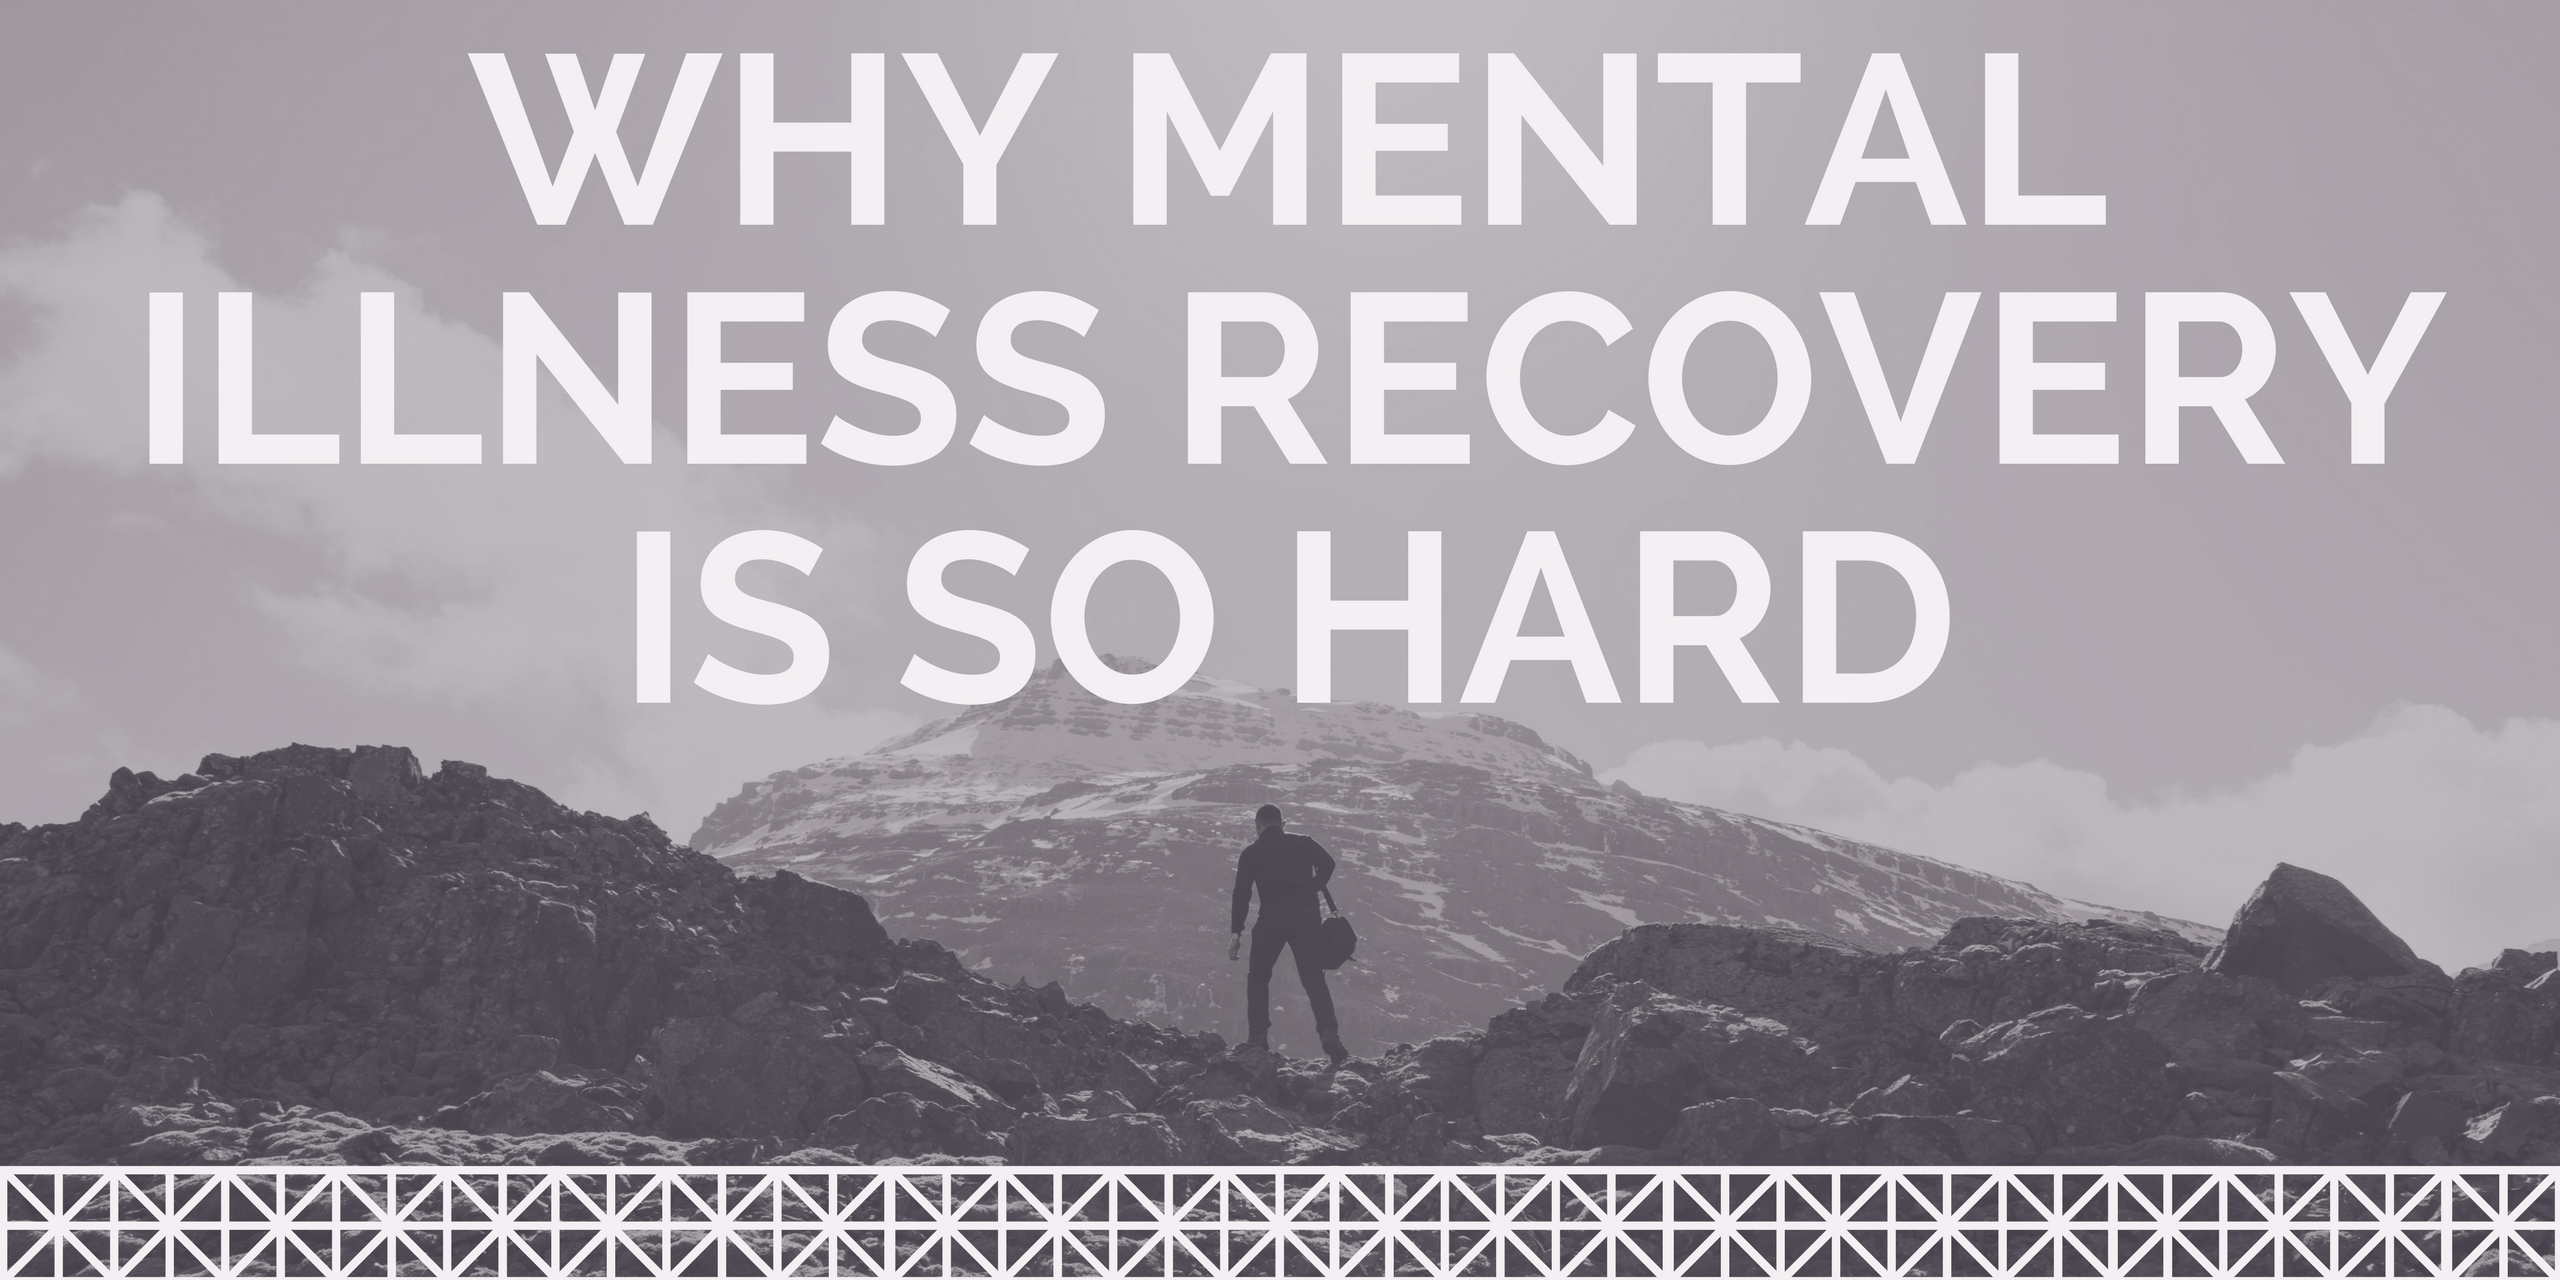 Why Mental Illness Recovery is So Hard